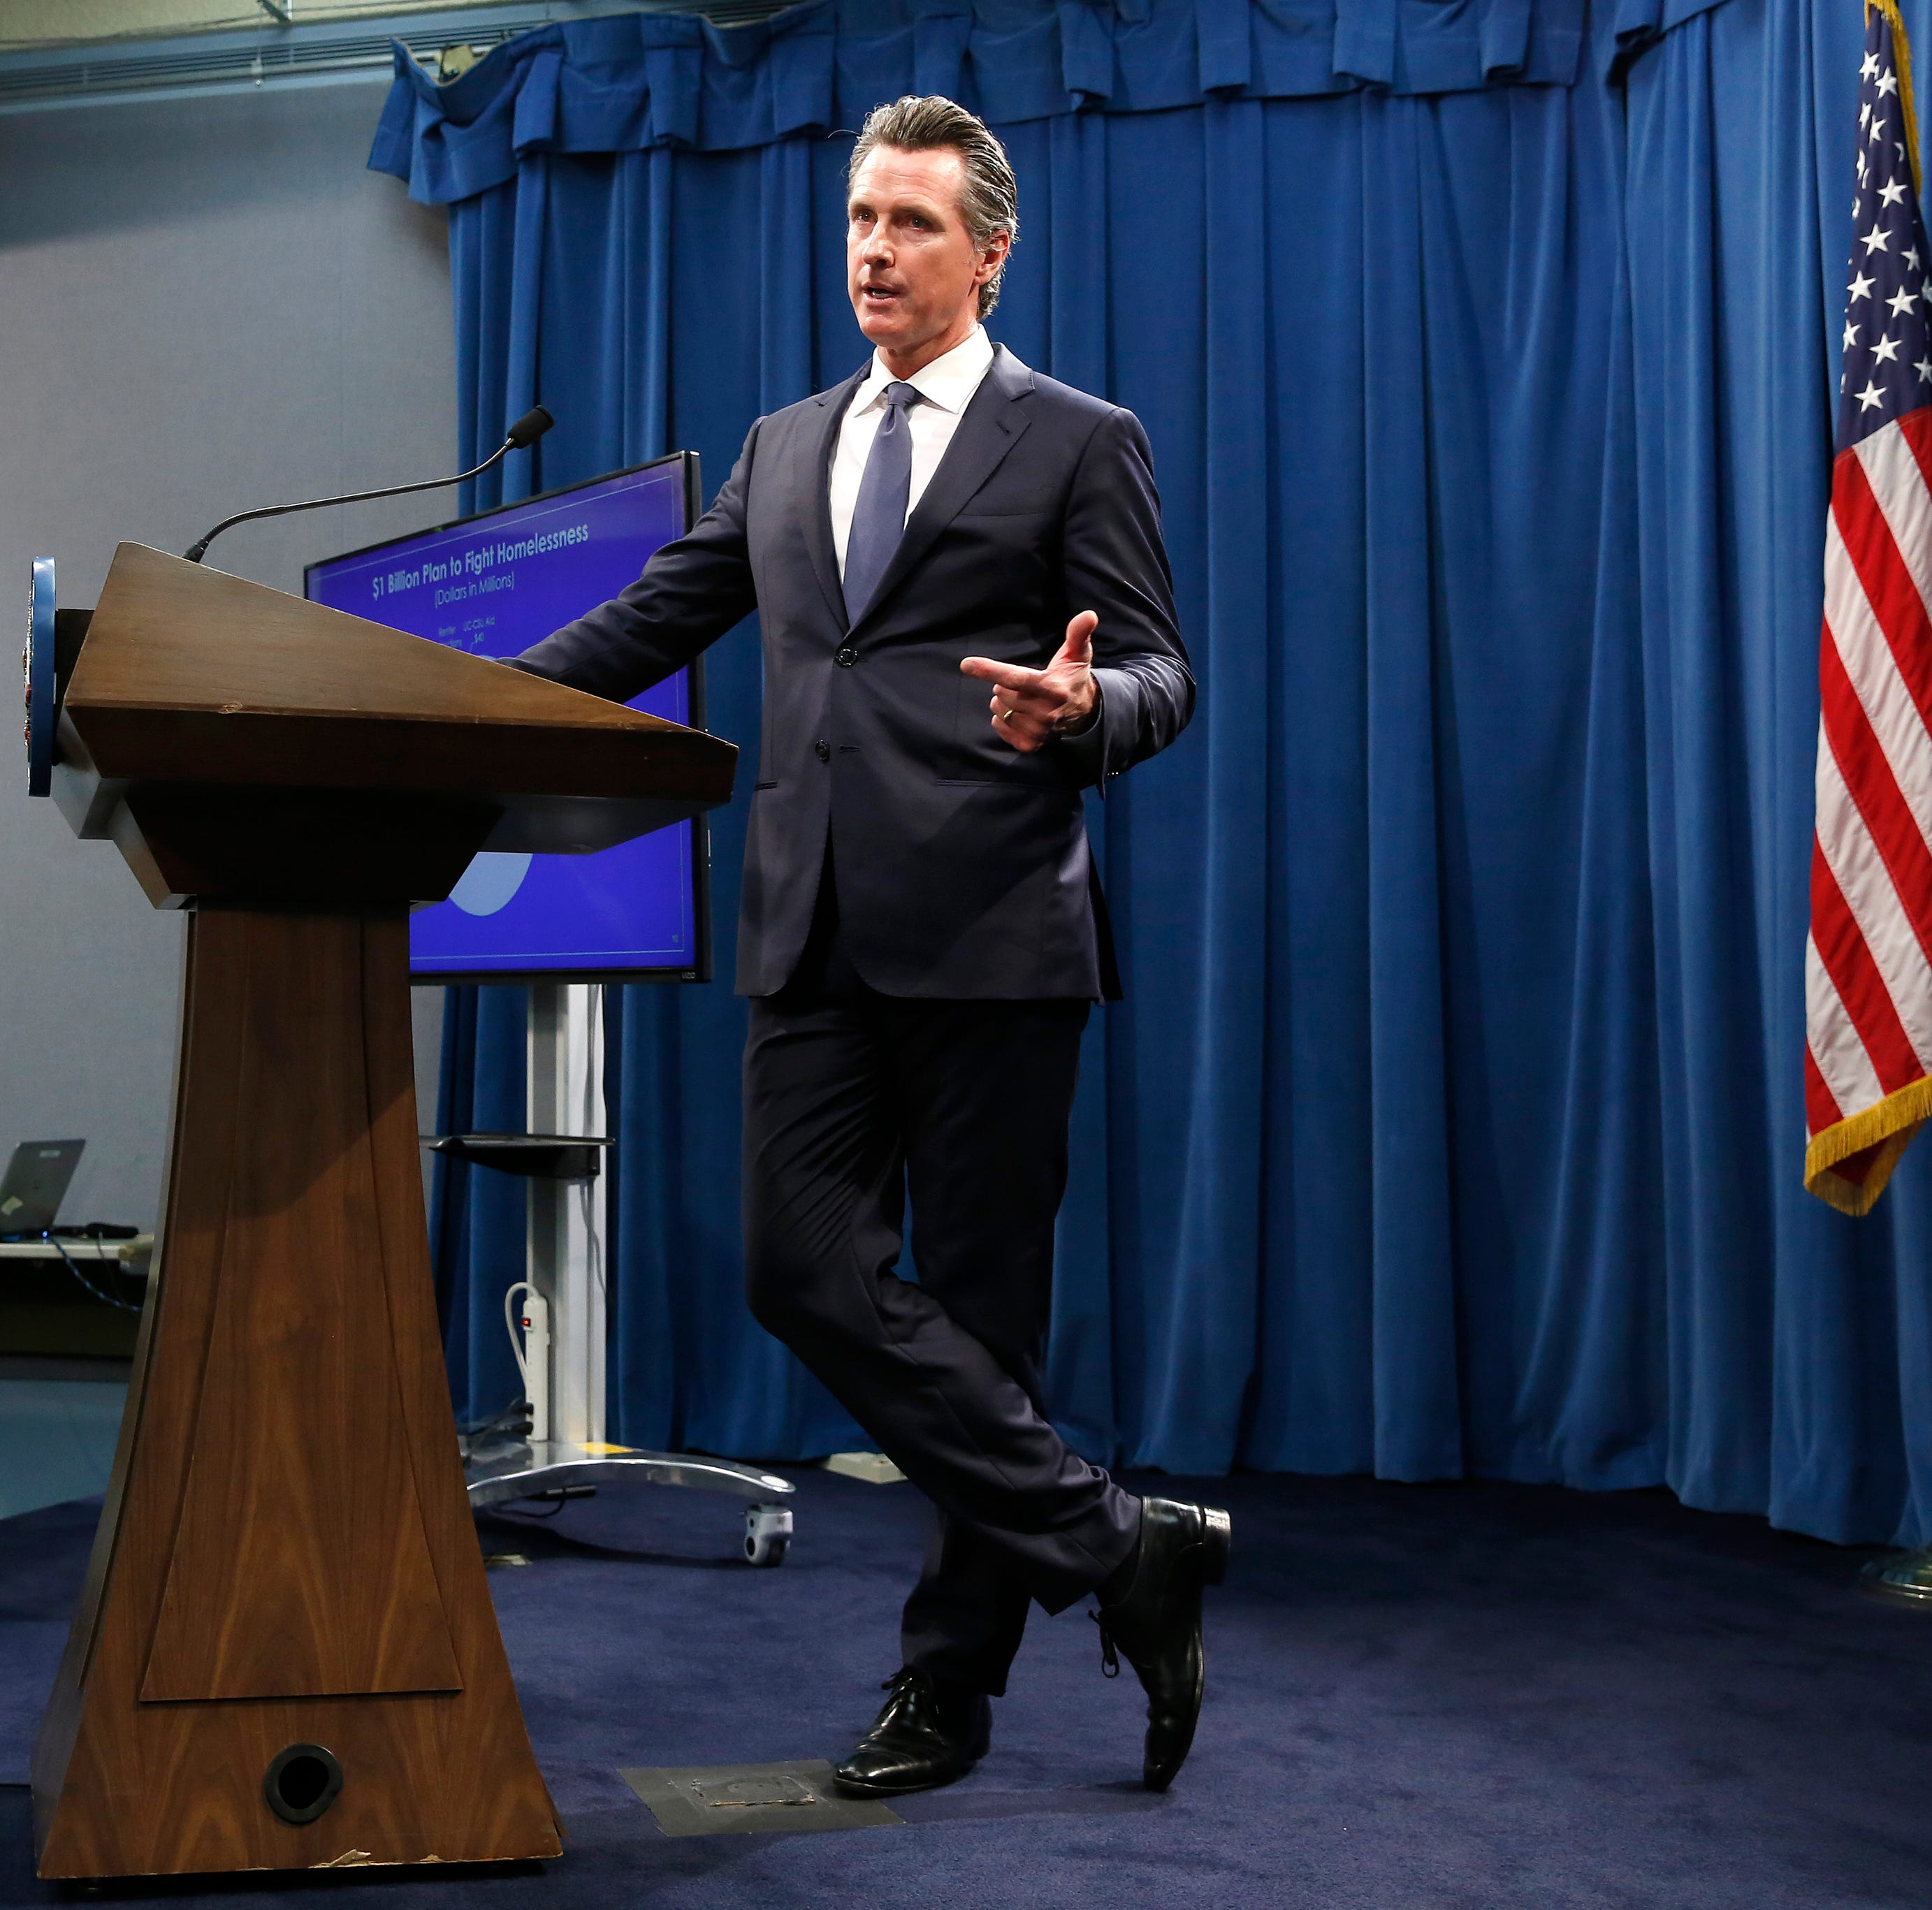 5 takeaways from California Gov. Gavin Newsom's revised budget plan